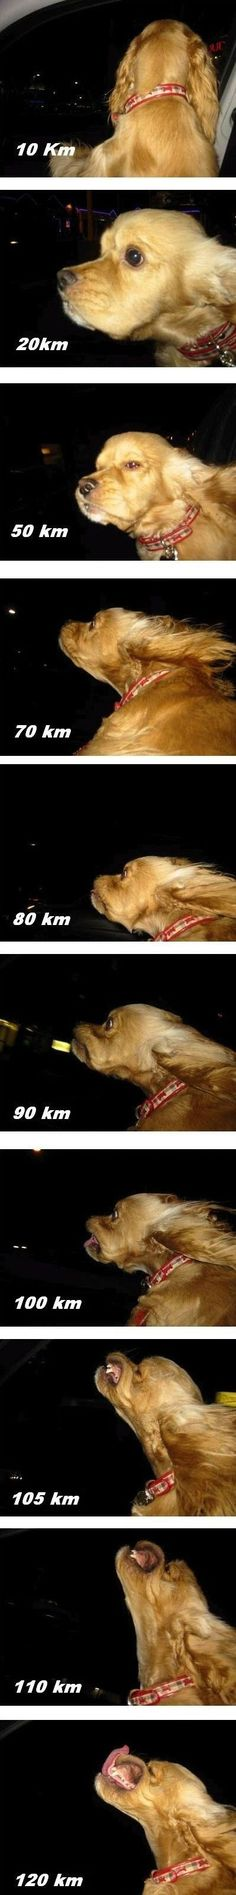 The dog speedometer. Try to look at this and not laugh #dazehub #TrendPin